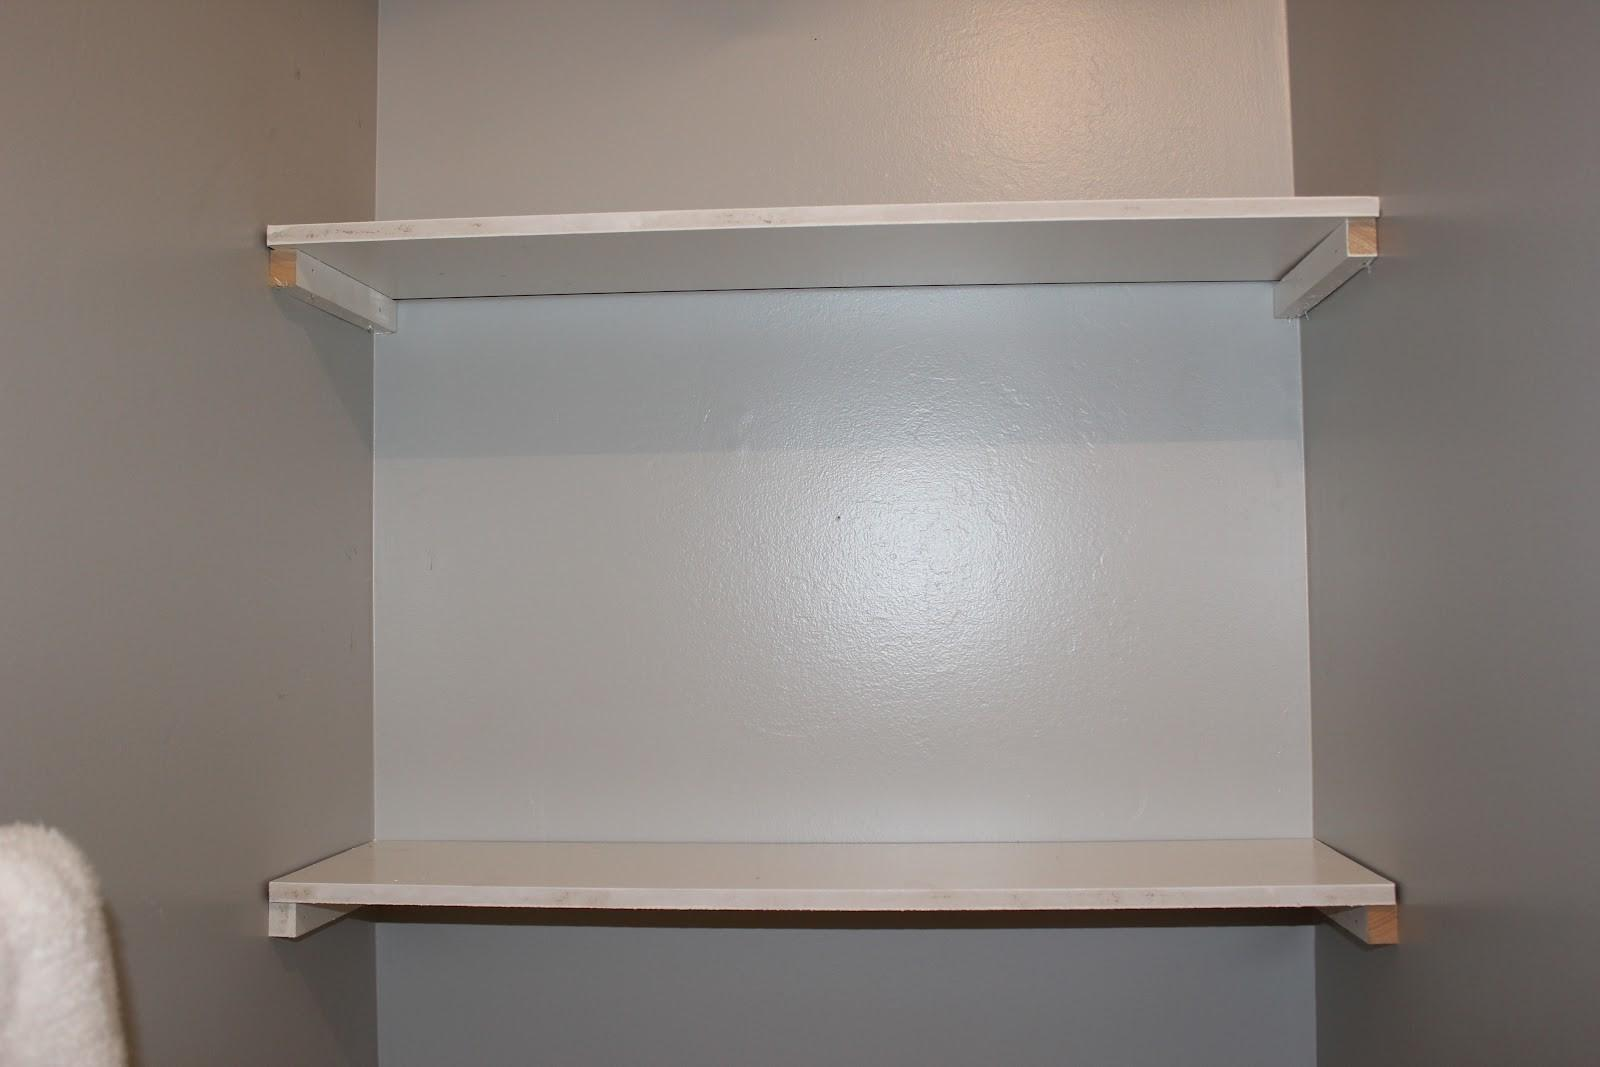 Built Bathroom Shelving Diy Less